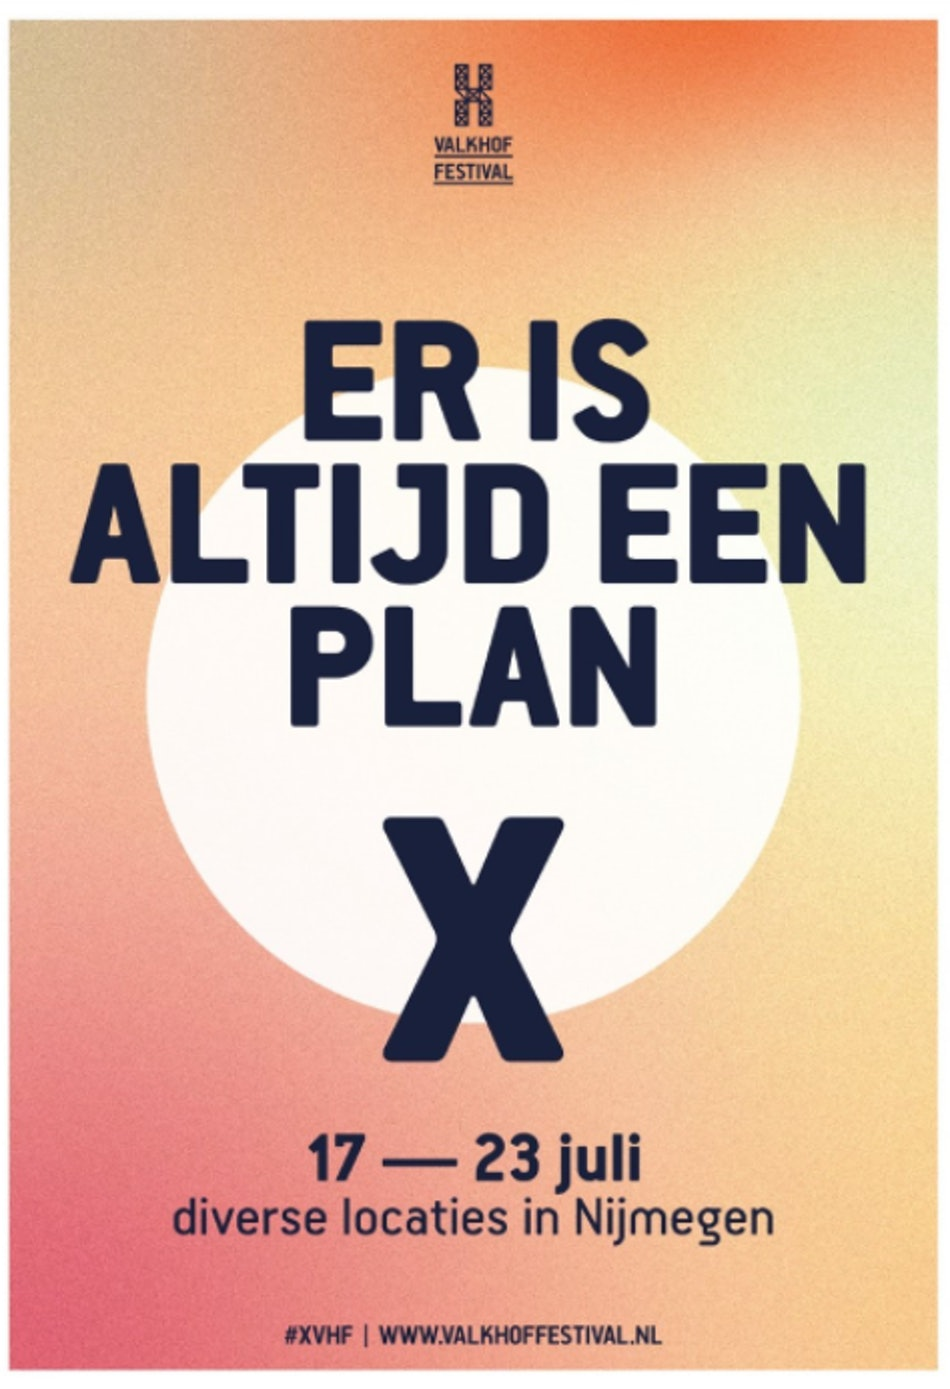 Placeholder for Plan X